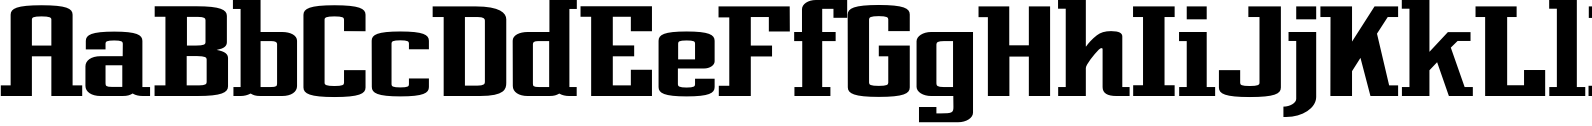 Posterface Extended  Font